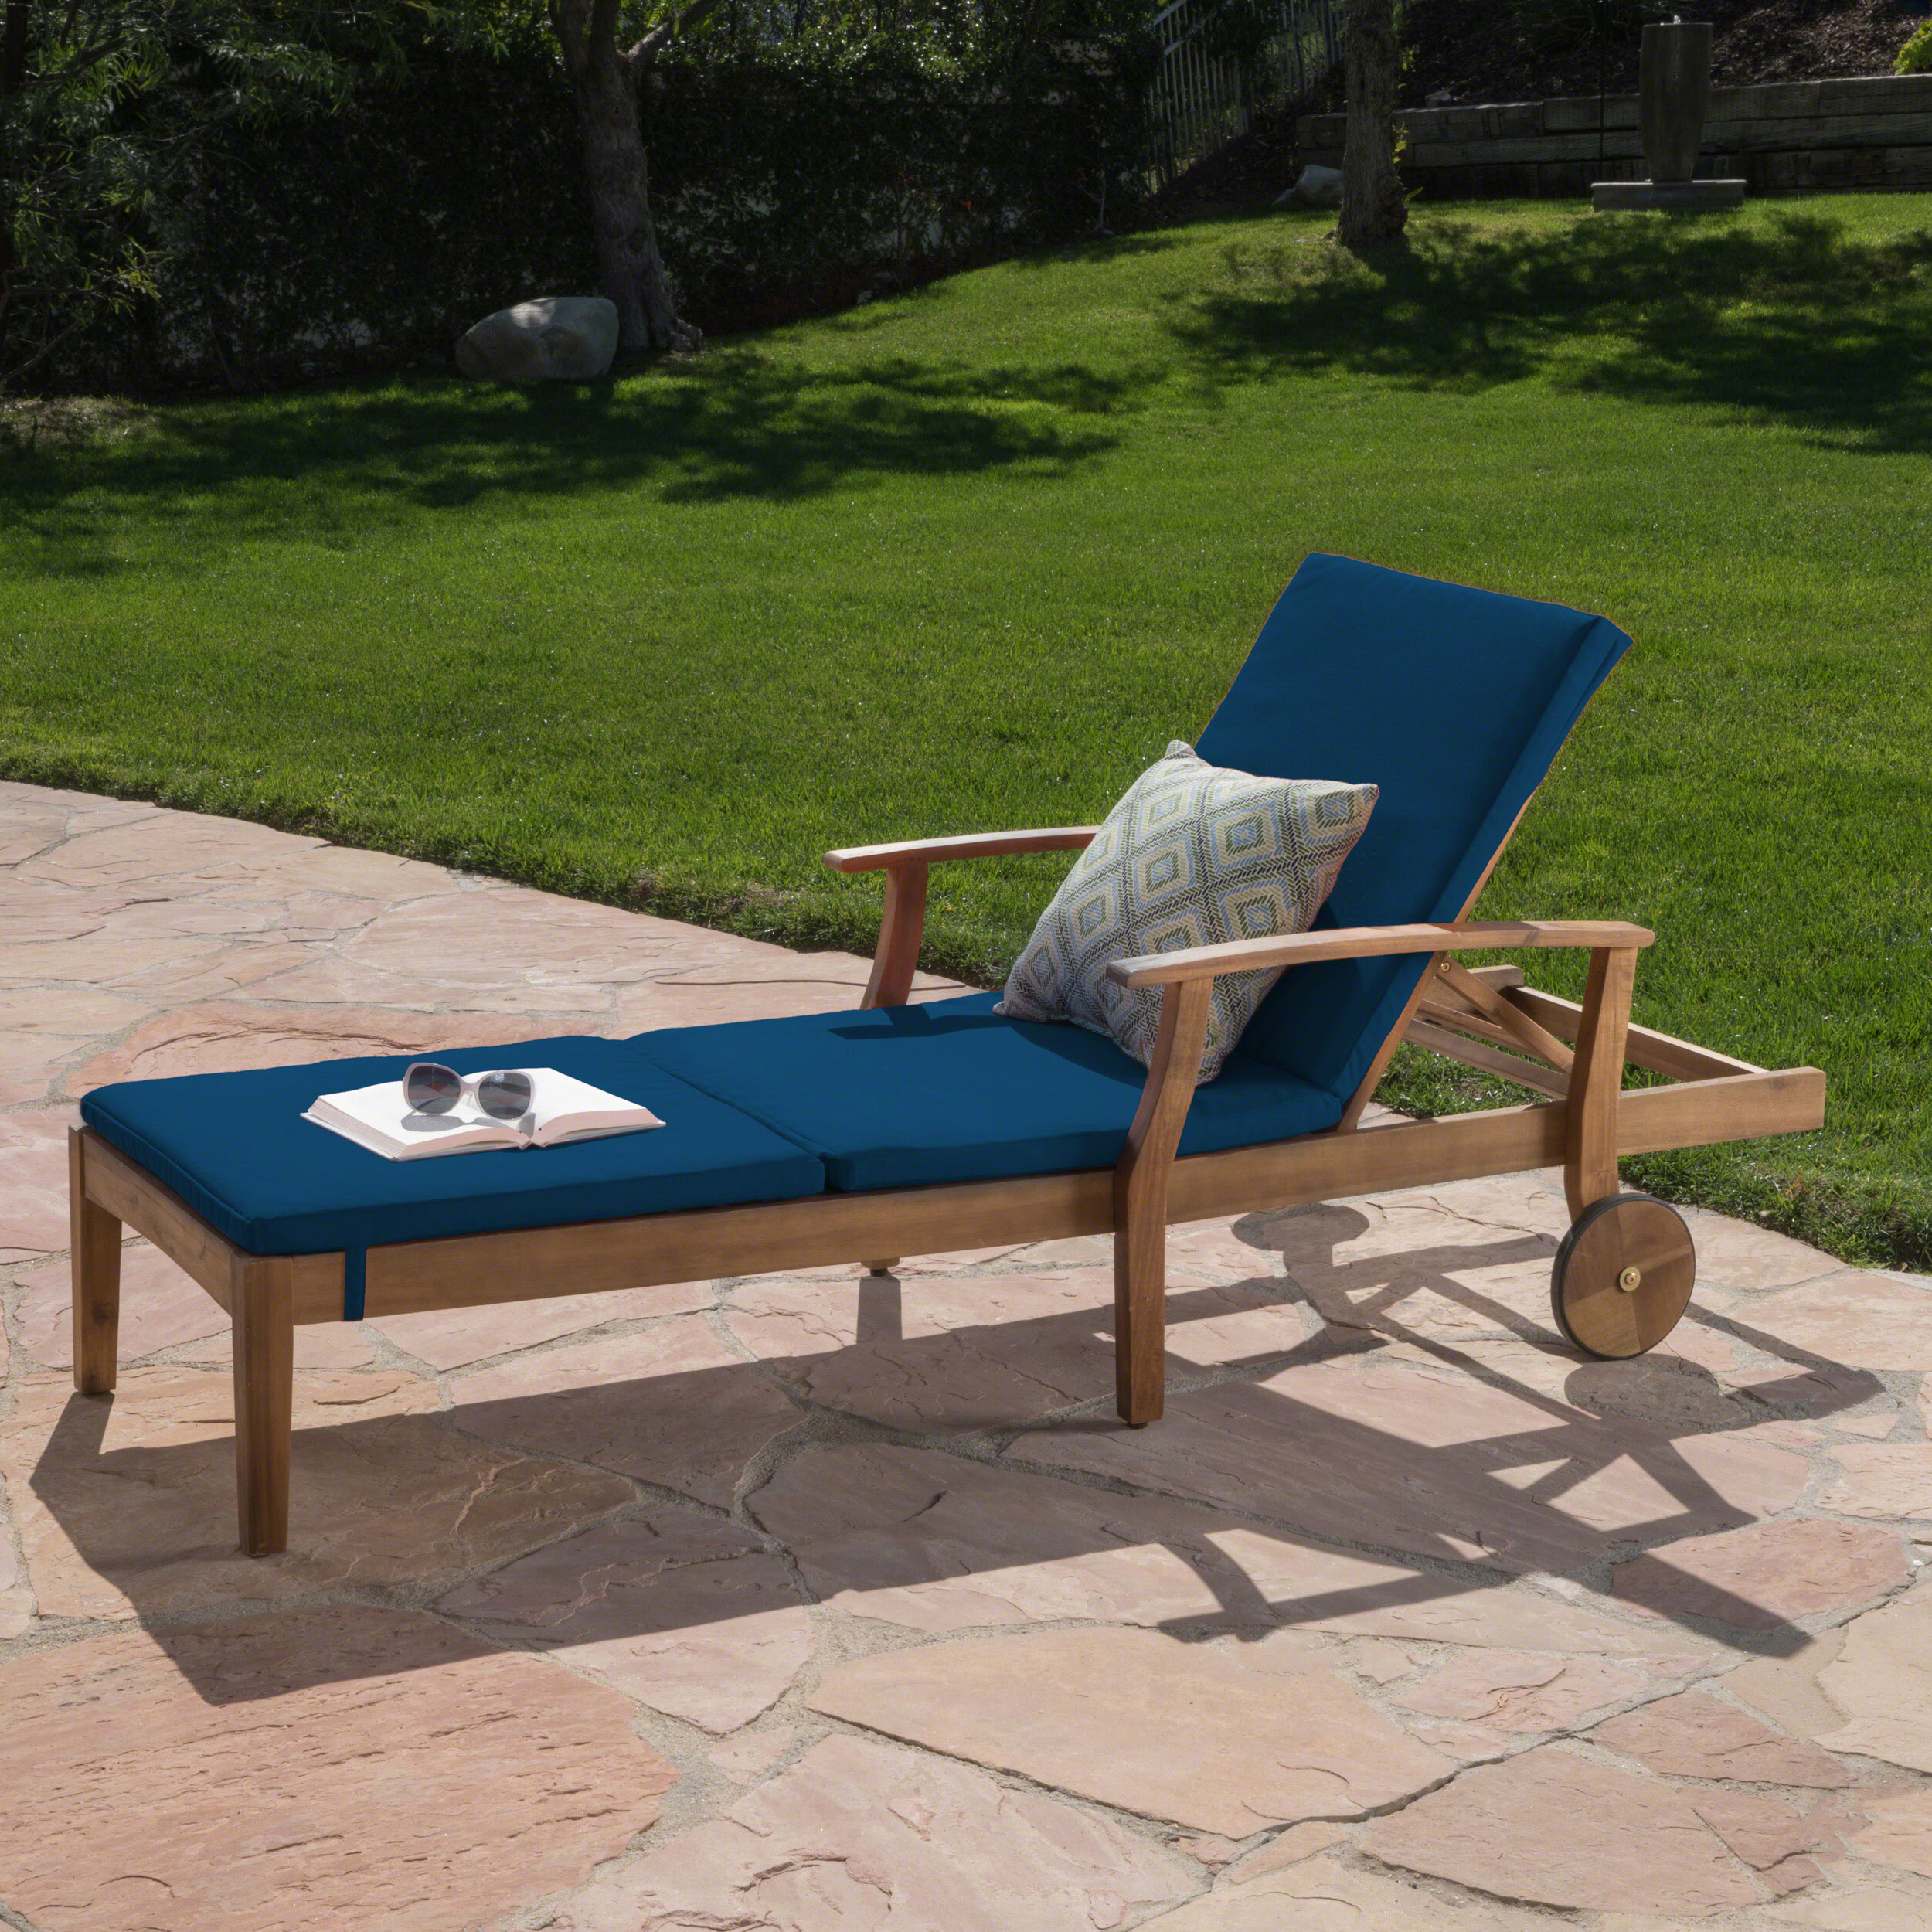 Daisy Outdoor Chaise Lounge with Water Resistant Cushion, Teak Finish and Blue